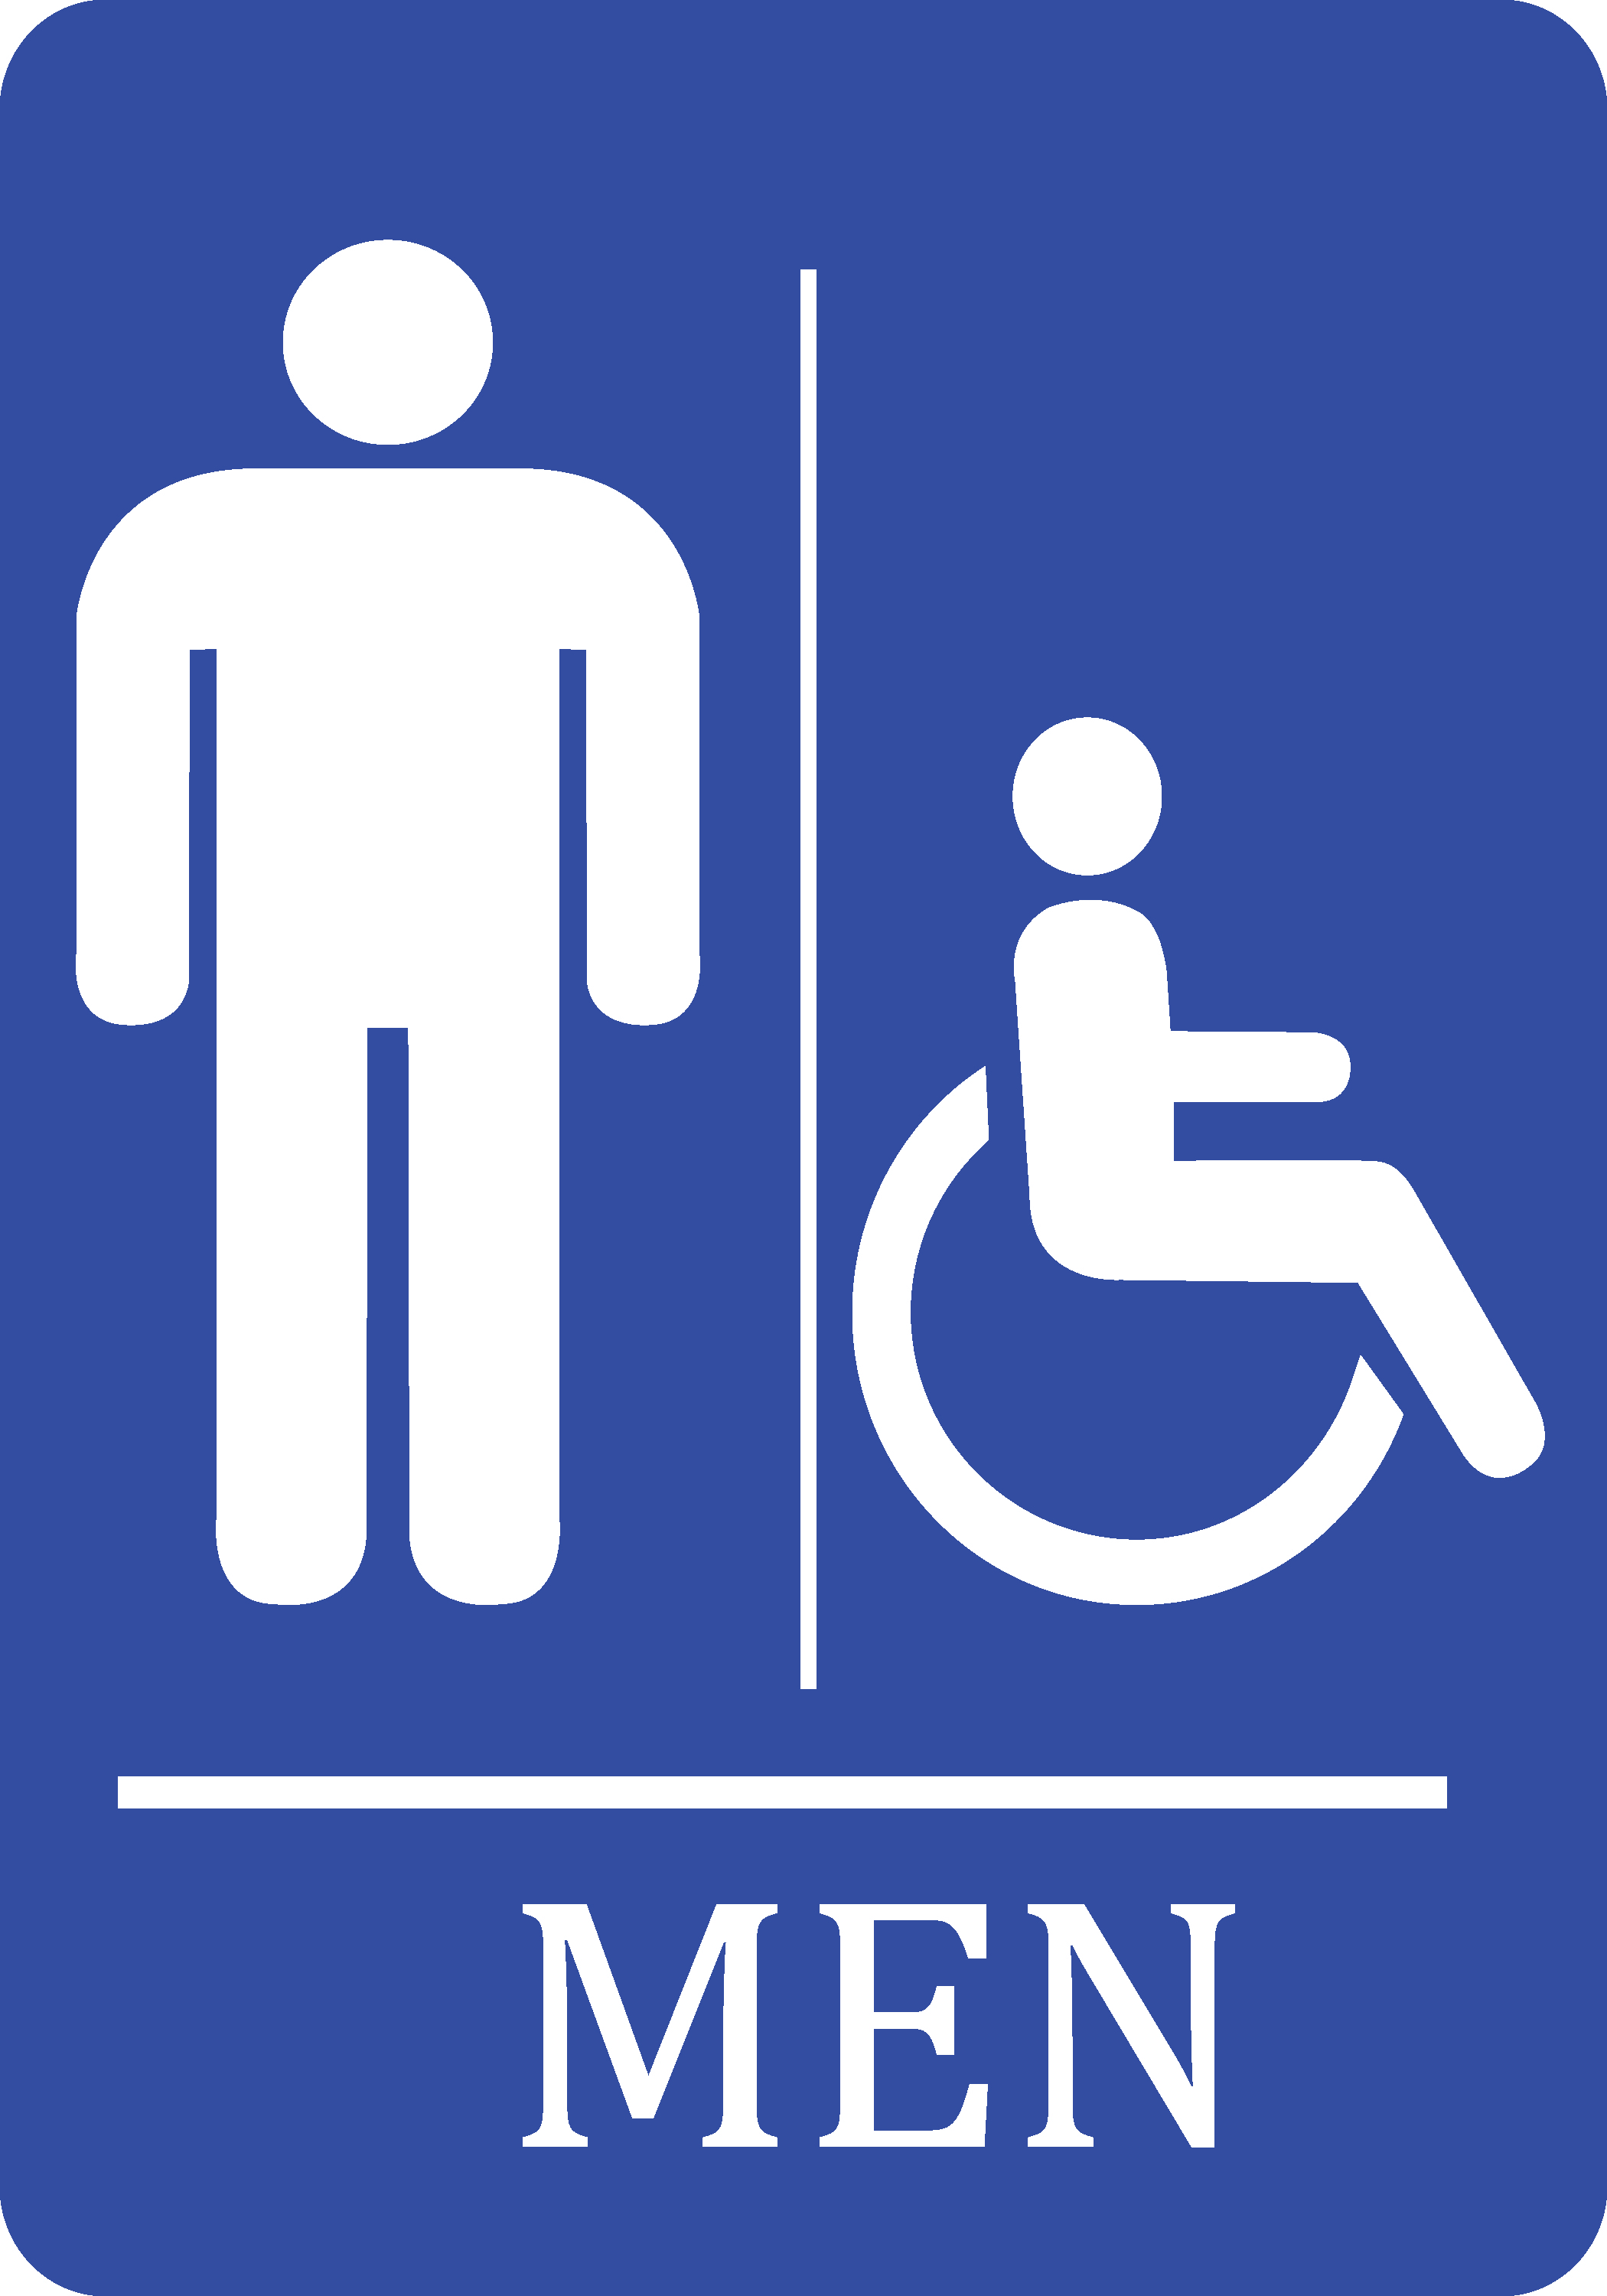 Mens Bathroom Handicap Accessible Blue Sign   Men Restroom Sign XL Signs  Plastic, 12x18